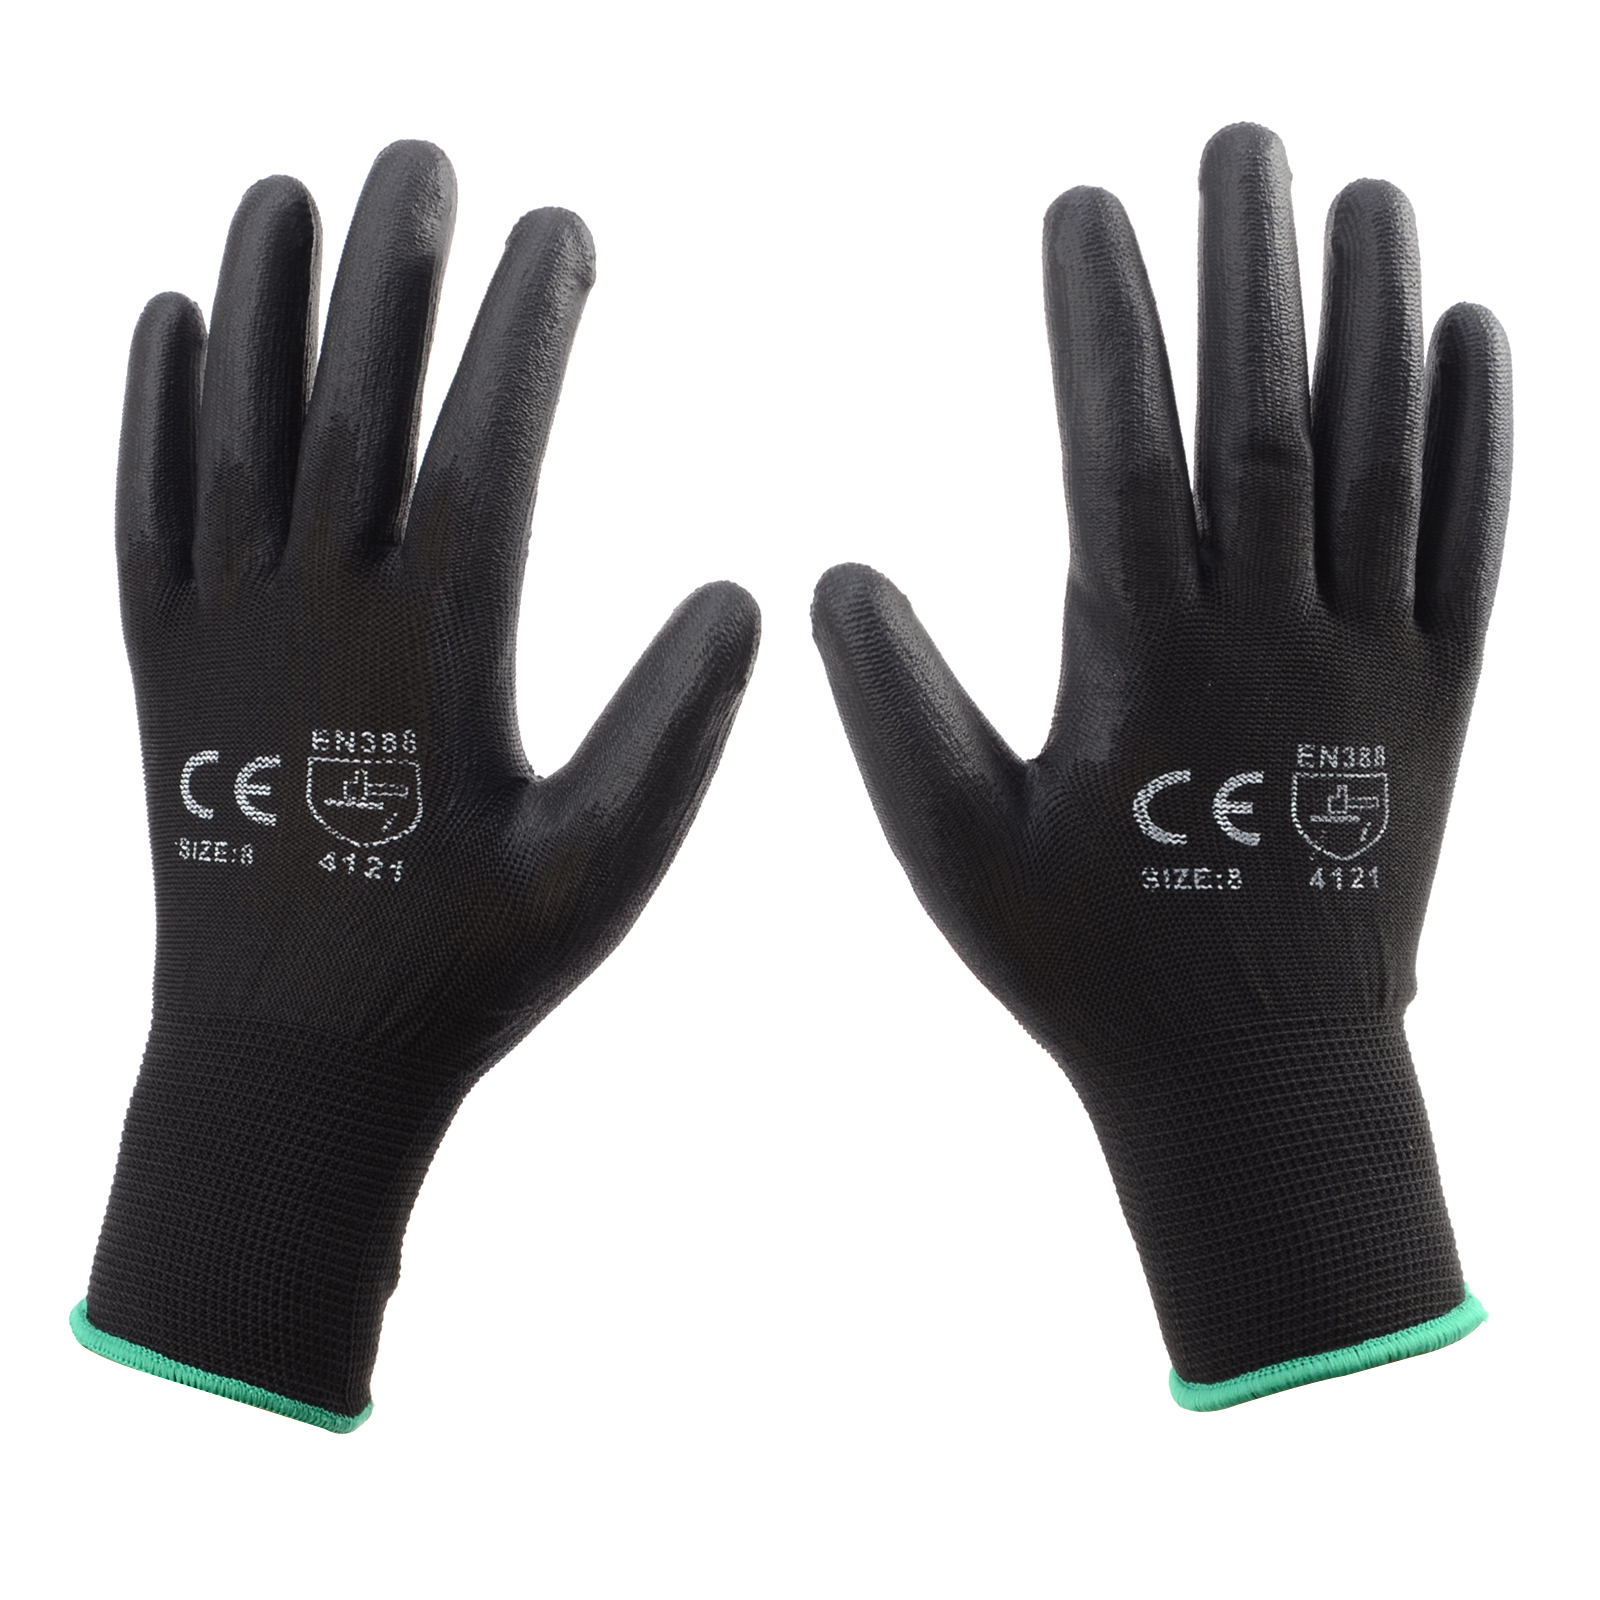 12 or 24 PAIRS BLACK NYLON PU COATED SAFETY WORK GLOVES GARDEN GRIP  BUILDERS  d166c010c68b